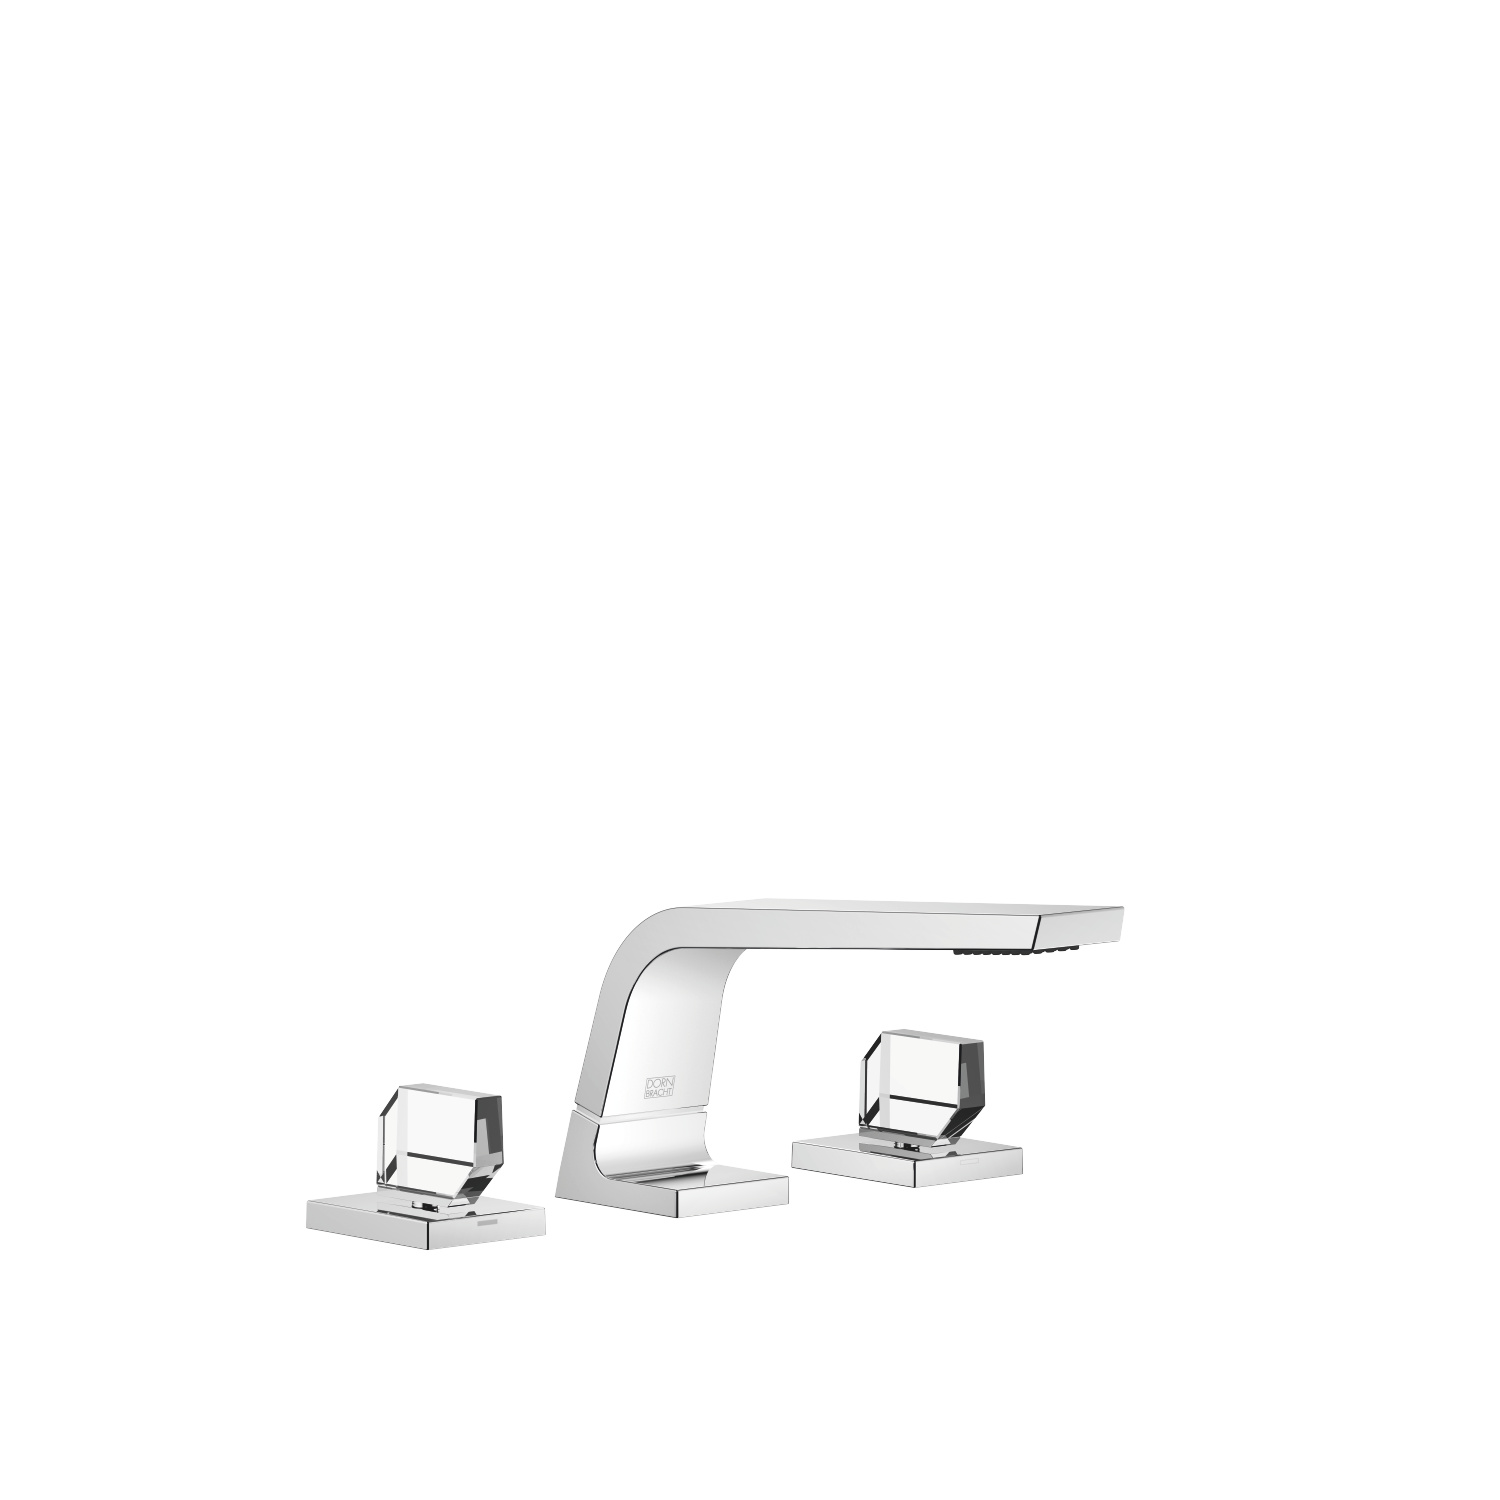 Three-hole basin mixer without pop-up waste - polished chrome - 13 714 705-00 + 20 008 705-00 + 20 008 706-00